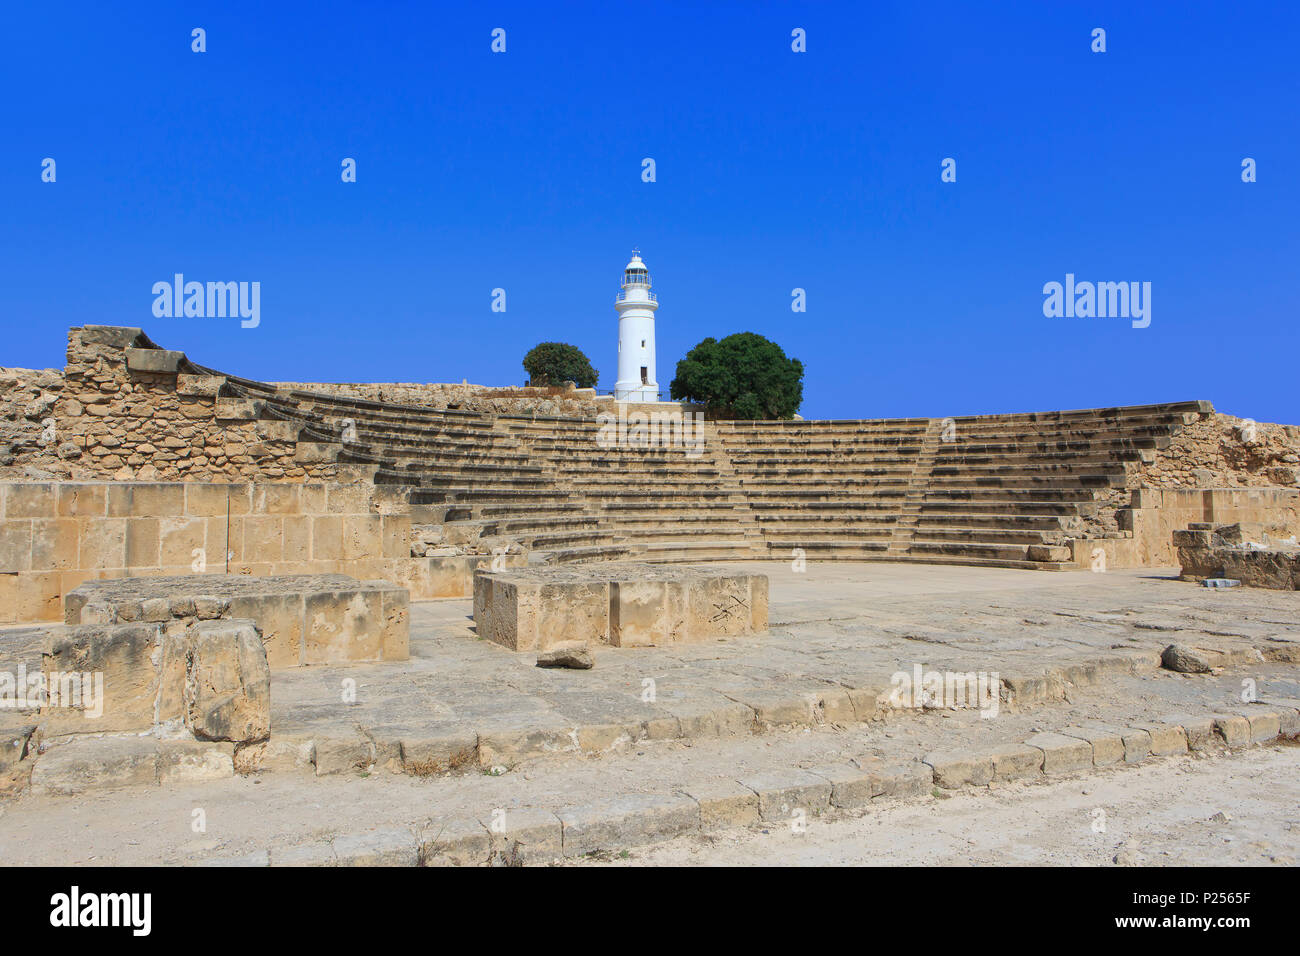 Odeon theater (2nd Century AD - 1200 seats) and lighthouse at the Paphos Archaeological Park in Paphos, Cyprus Stock Photo